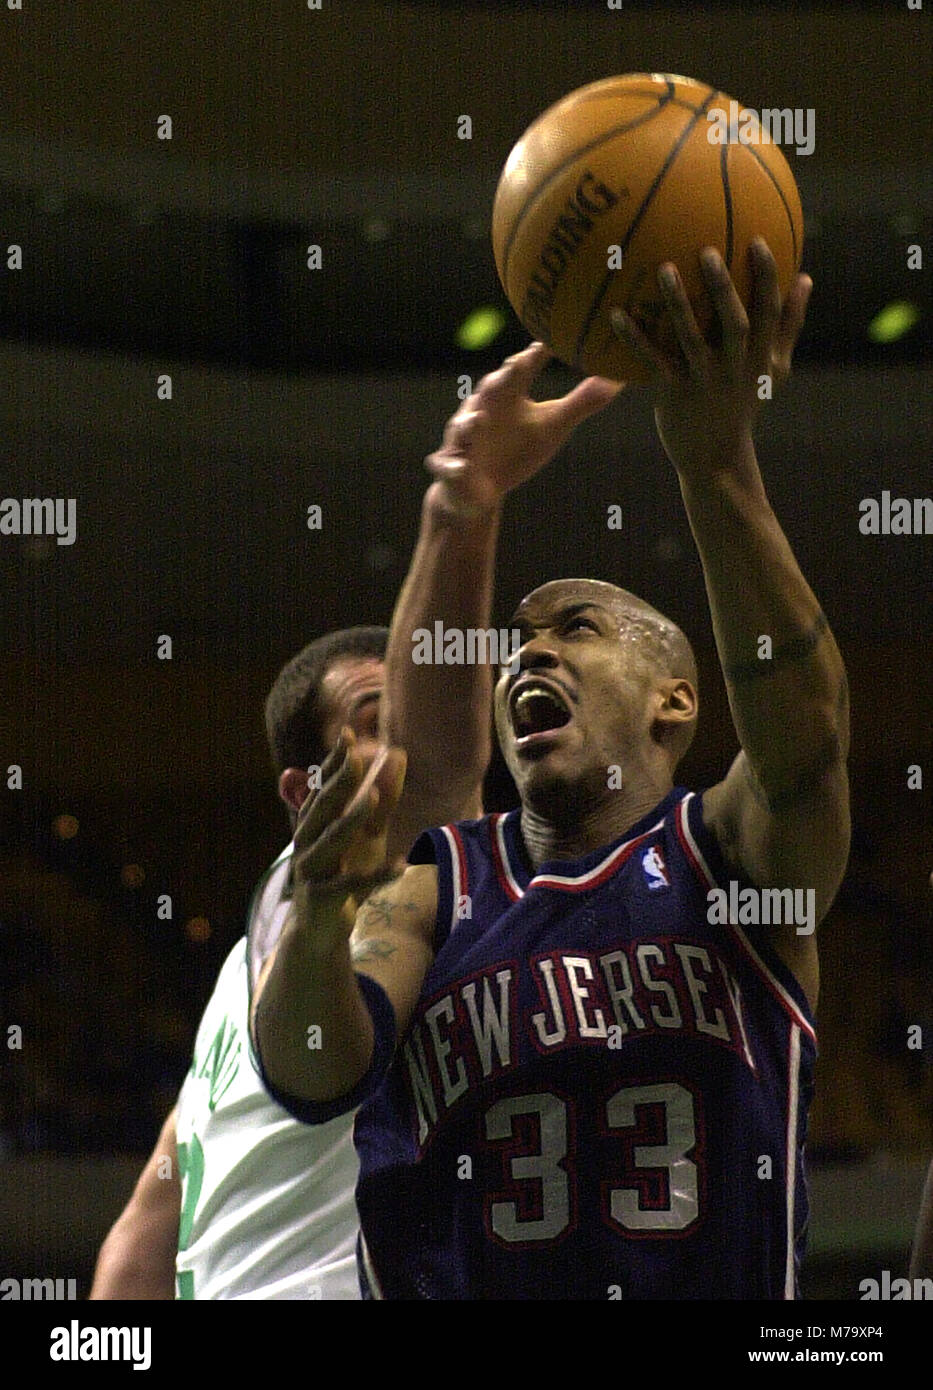 big sale 43d3a 017e5 New Jersey Nets #33 Stephon Marbury in action against the ...